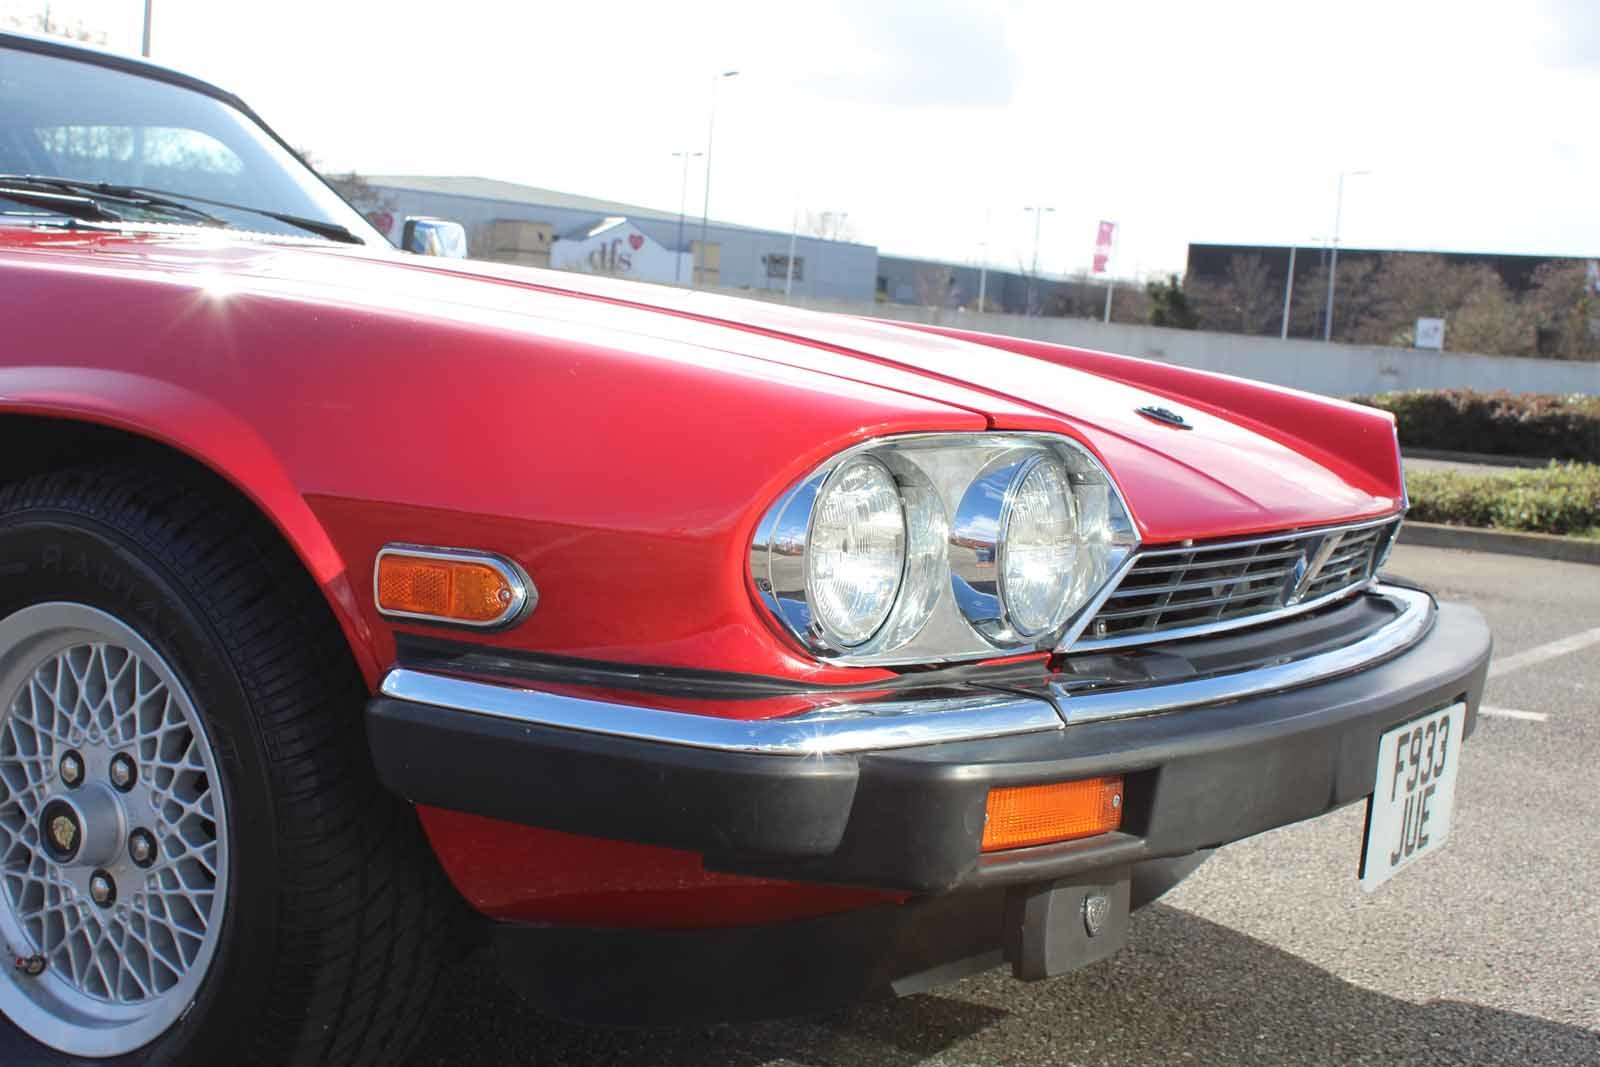 1989 Jaguar XJS V12 Coupe Just 3500 Miles! (LHD) For Sale (picture 9 of 19)